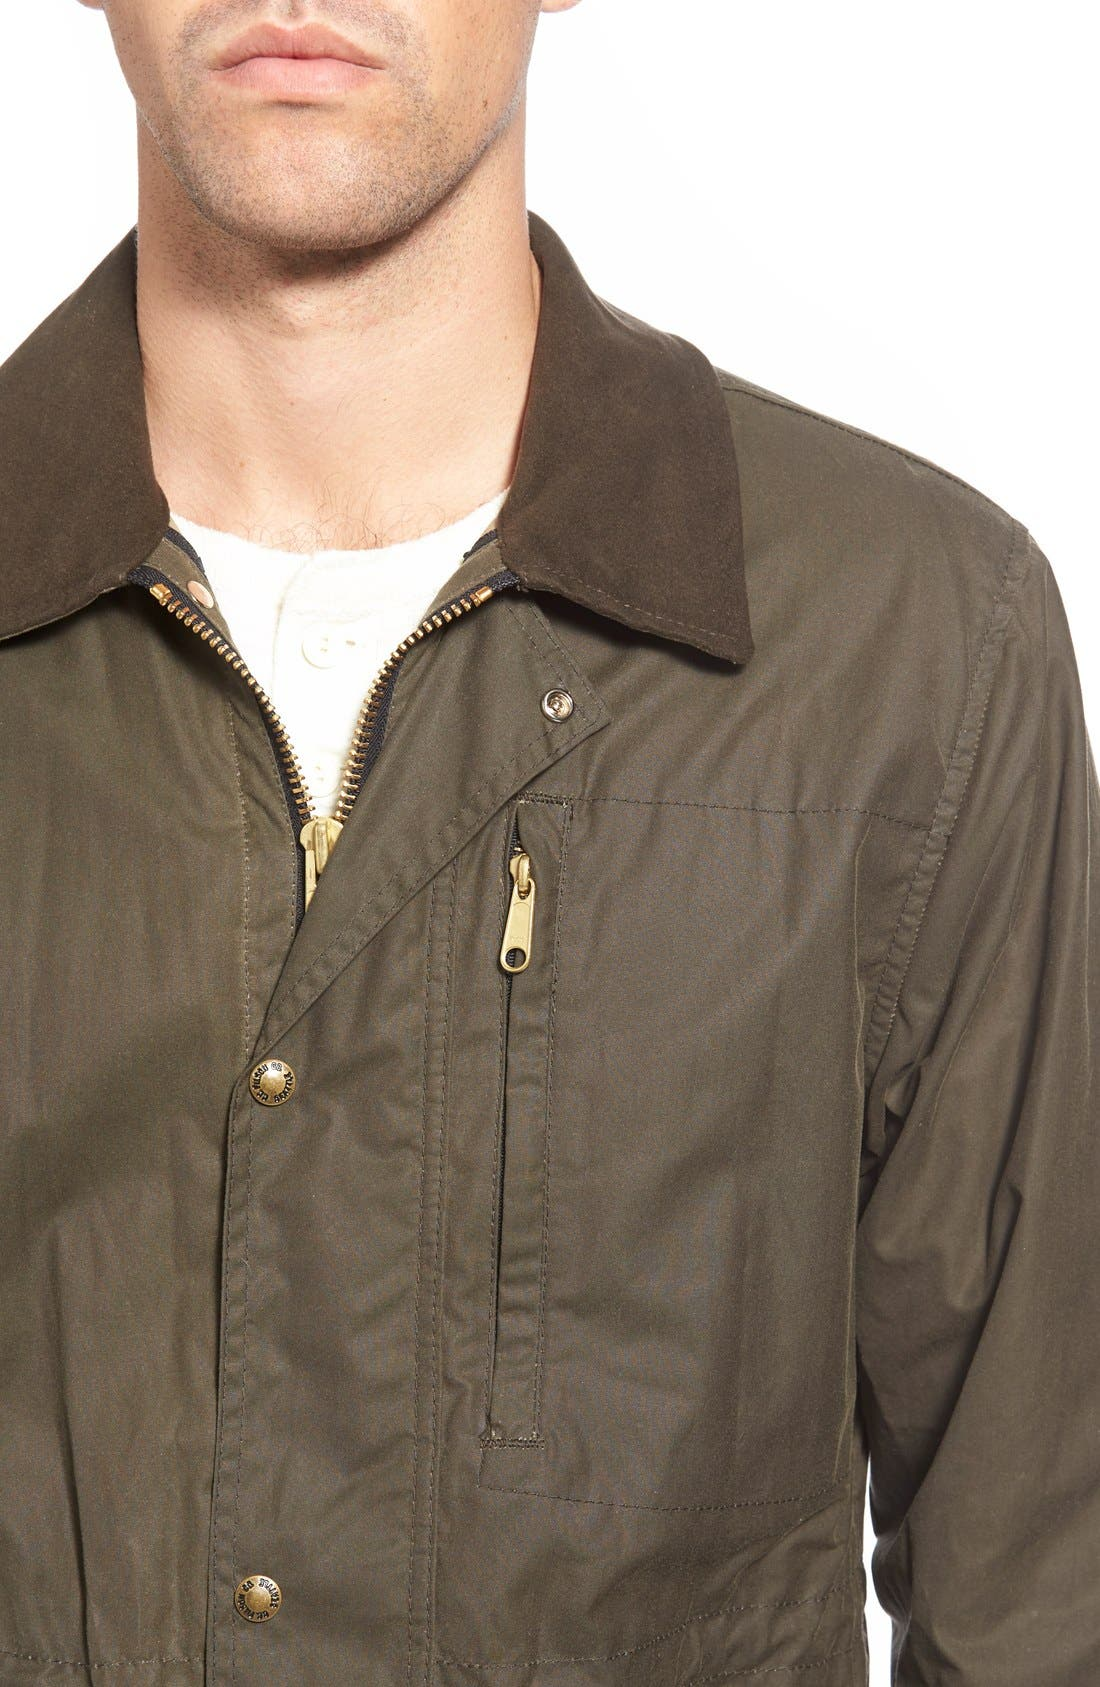 'Cover Cloth Mile Marker' Waxed Cotton Coat,                             Alternate thumbnail 4, color,                             Otter Green